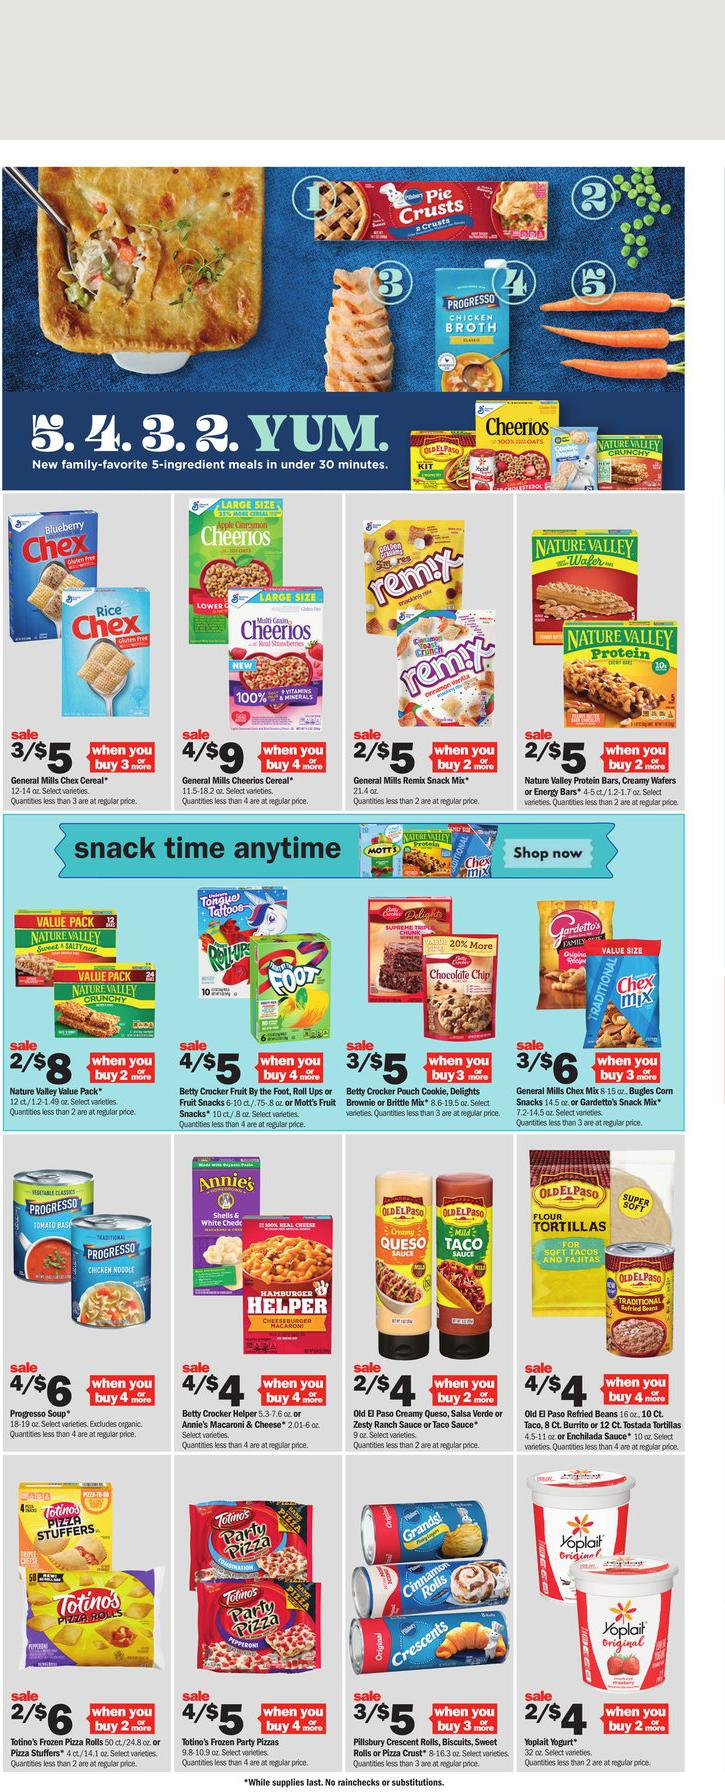 21.02.2021 Meijer ad 6. page